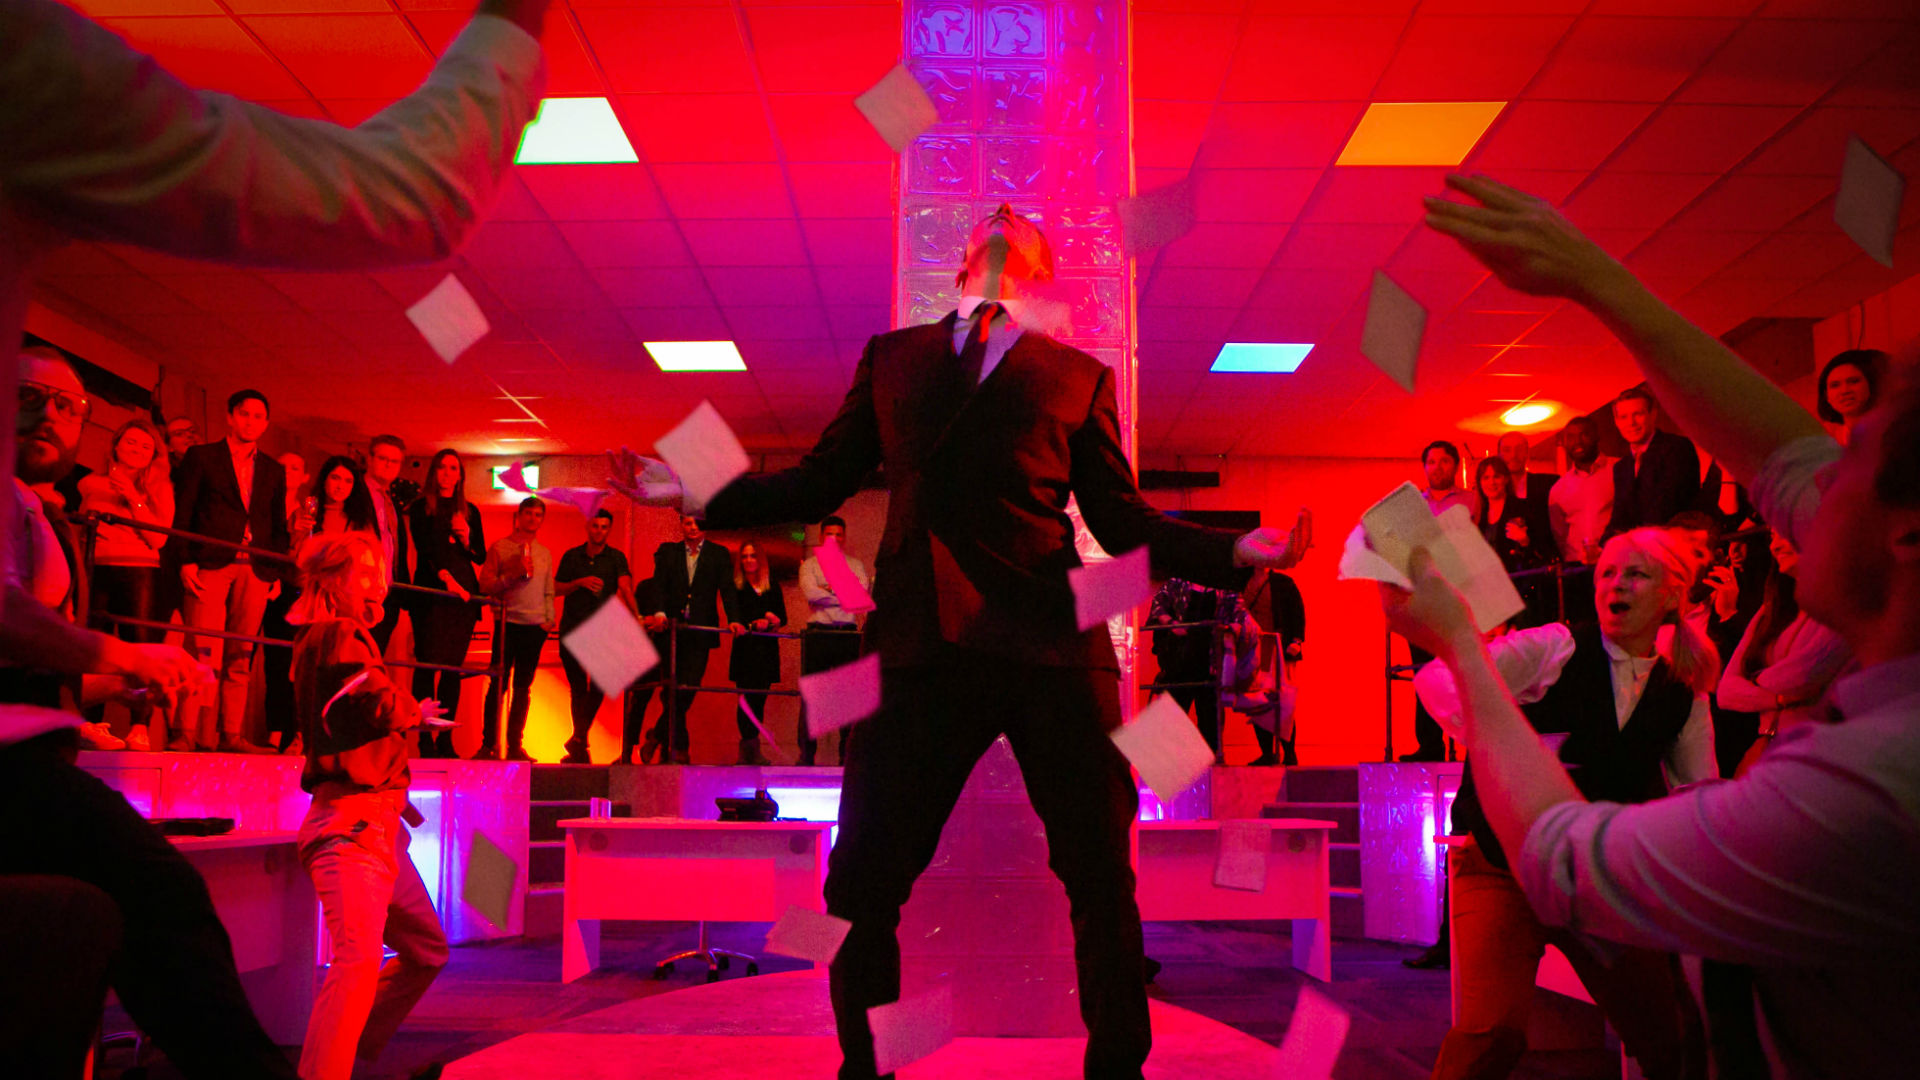 A man standing on stage with money-like paper flowing around, while people surround him watching, in a red-lit room.